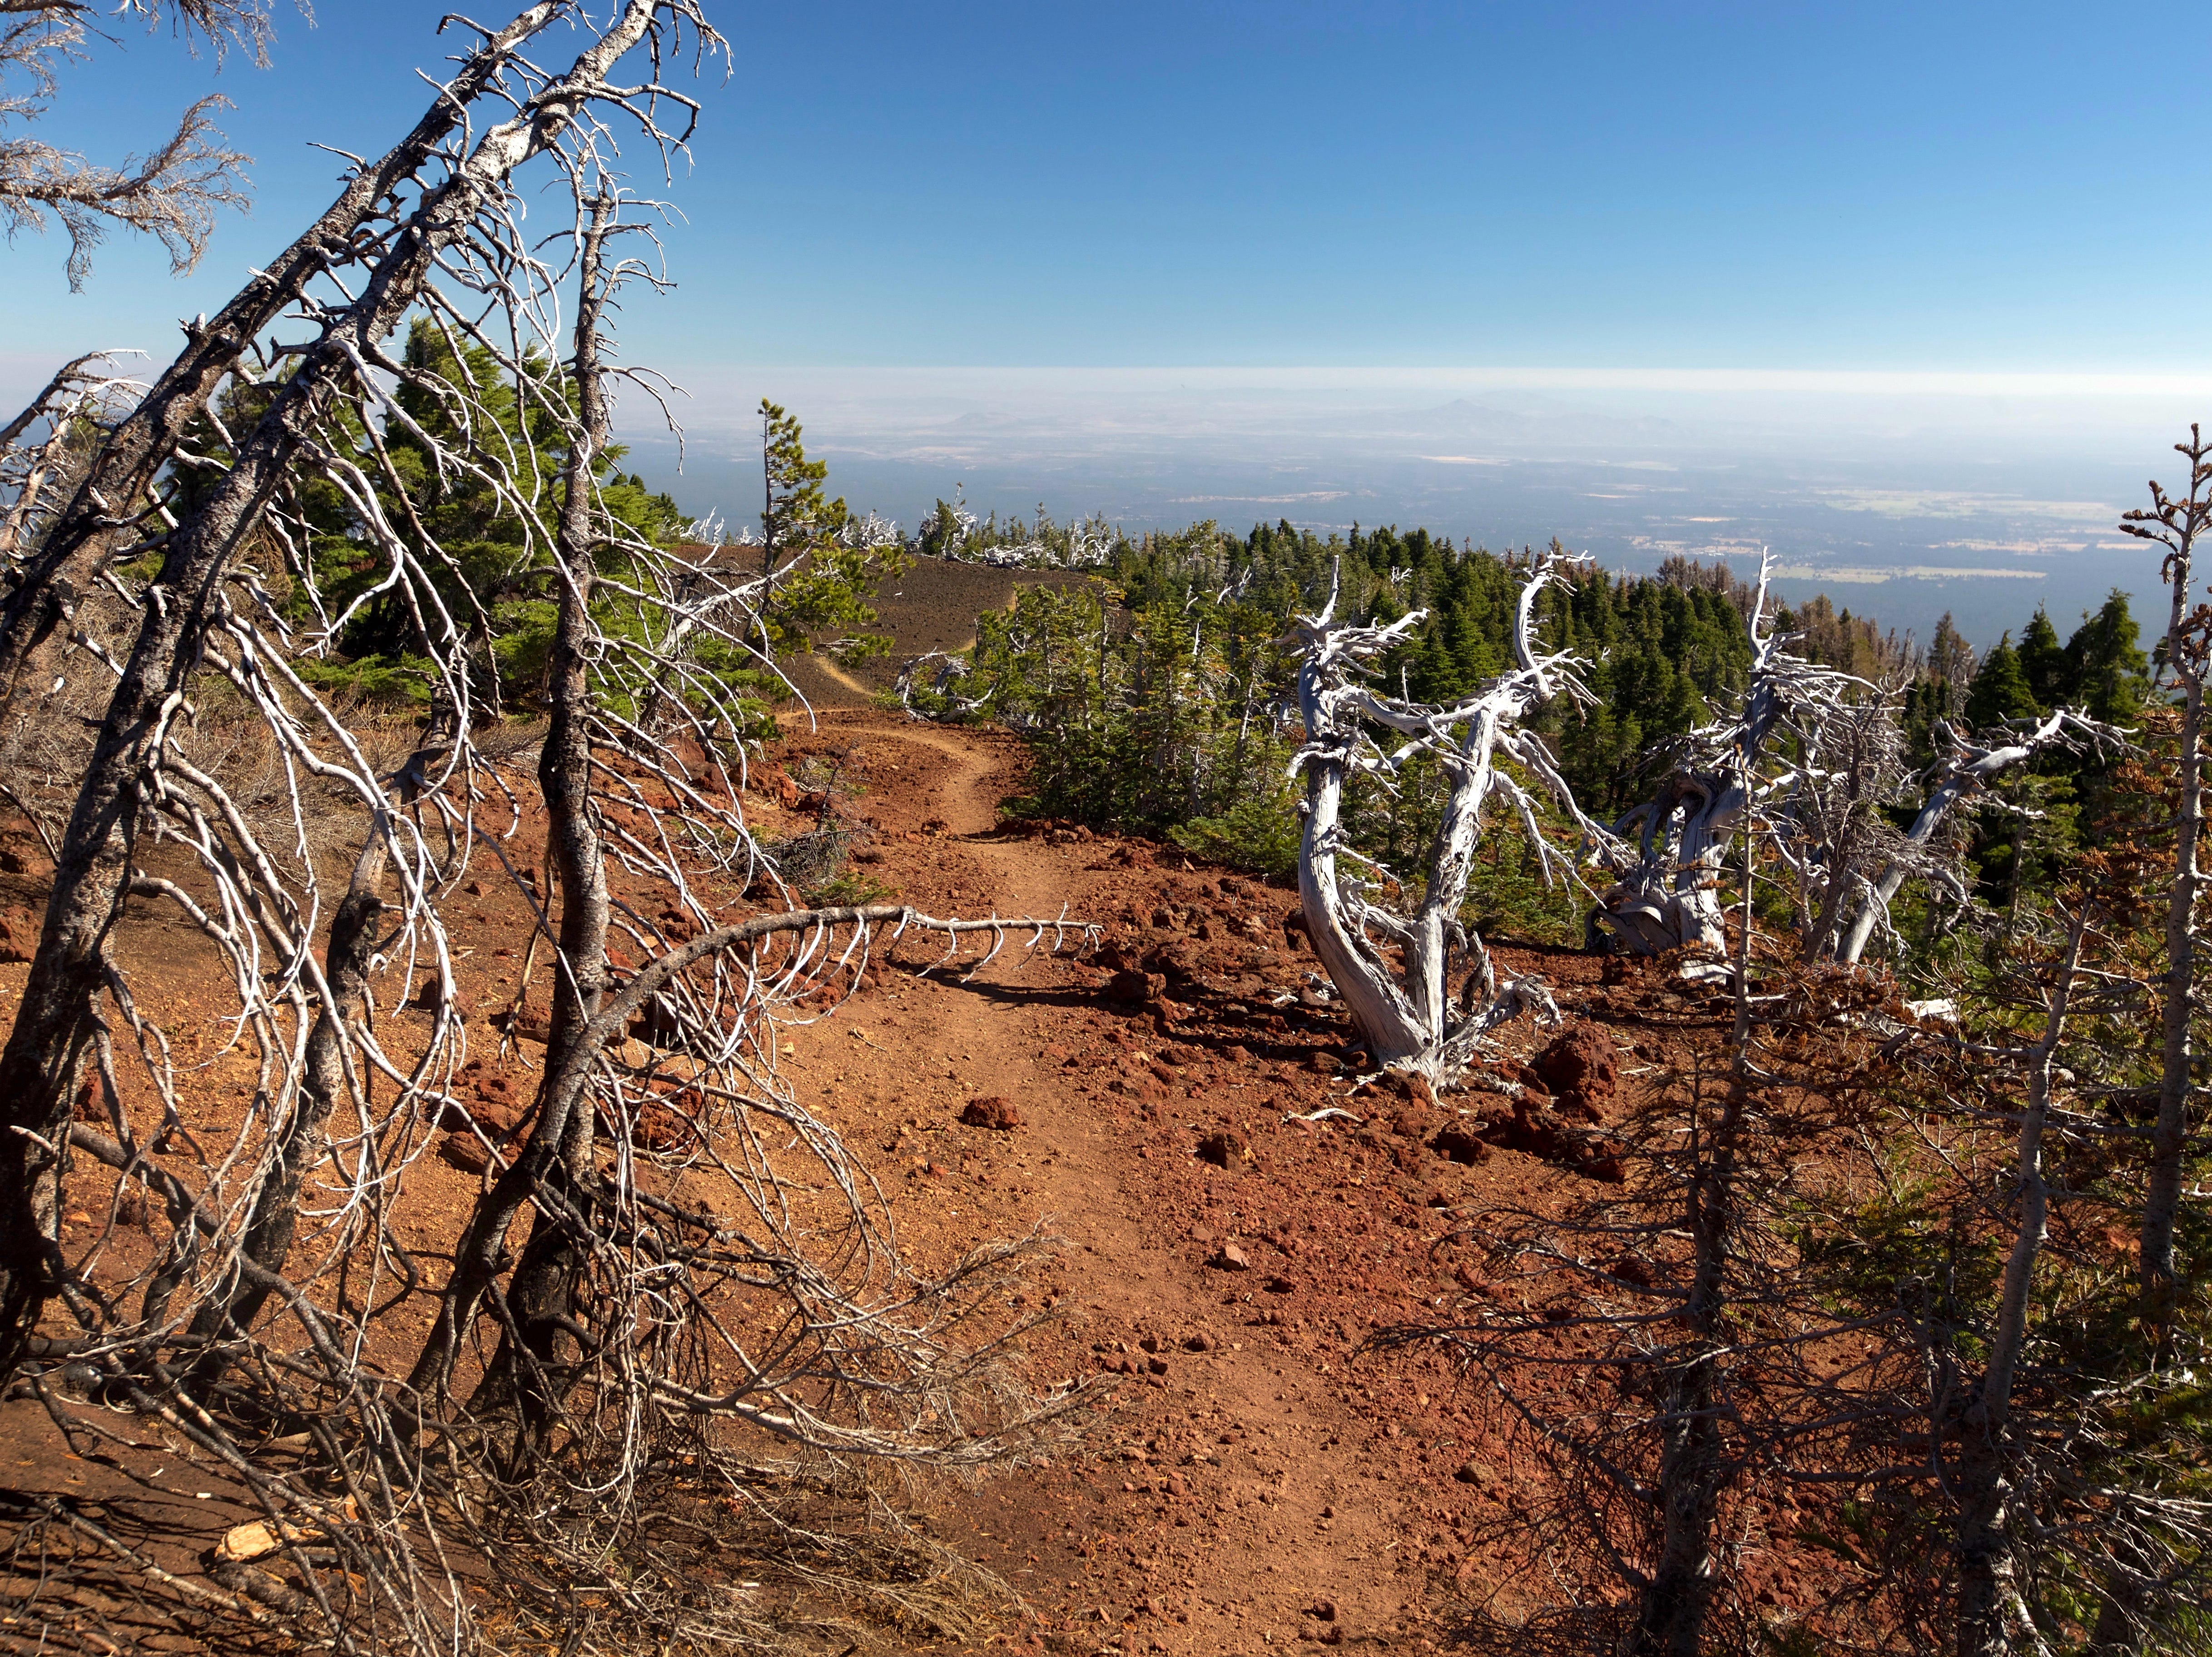 Top of Black Crater Trail with views of High Desert west of Sisters.